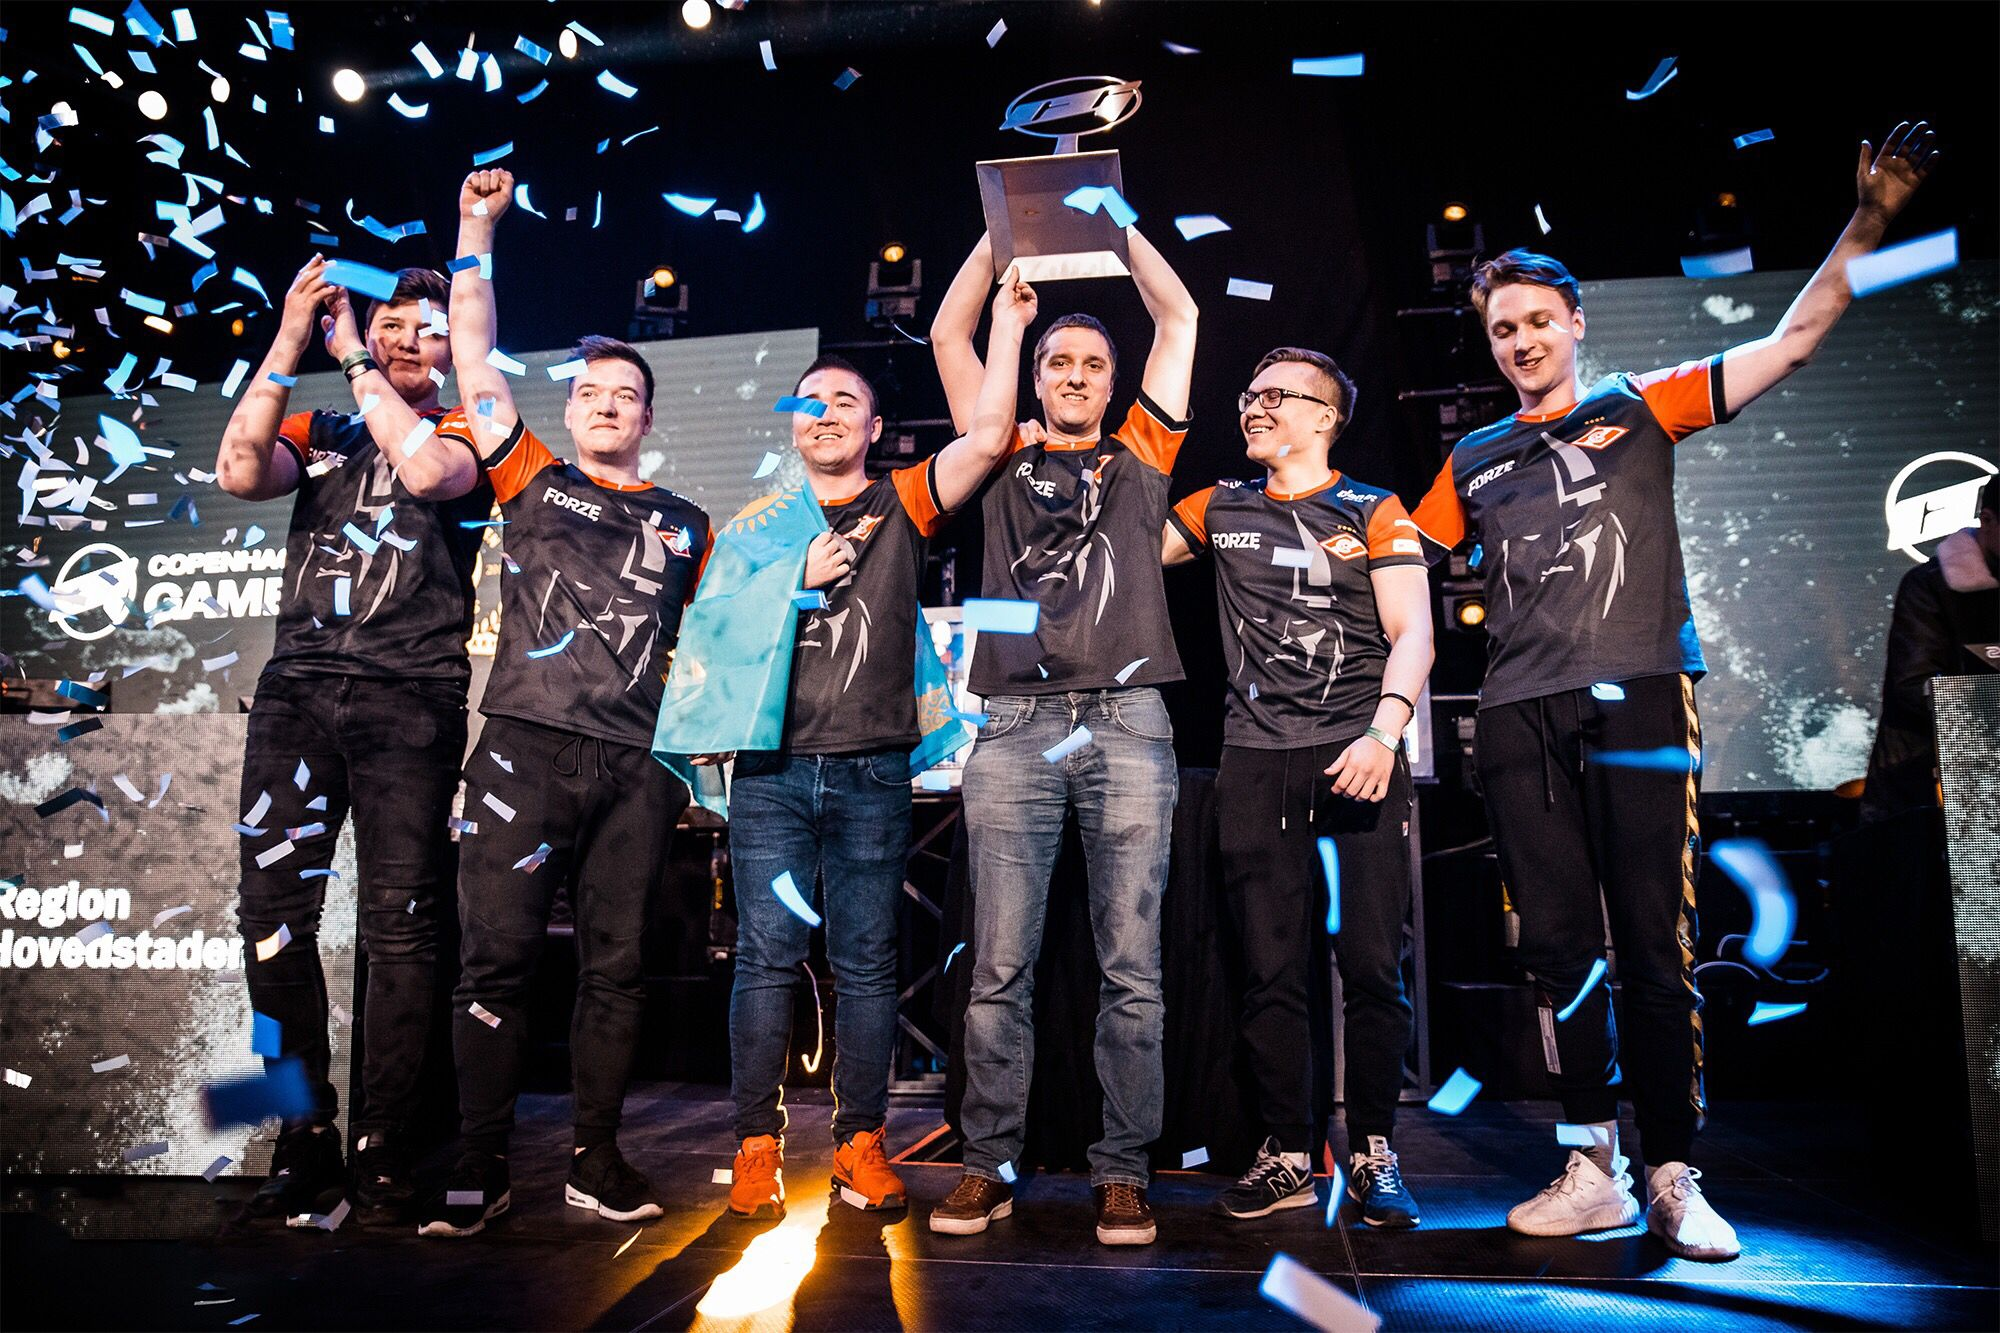 ForZe is the champion of Copenhagen Games 2019